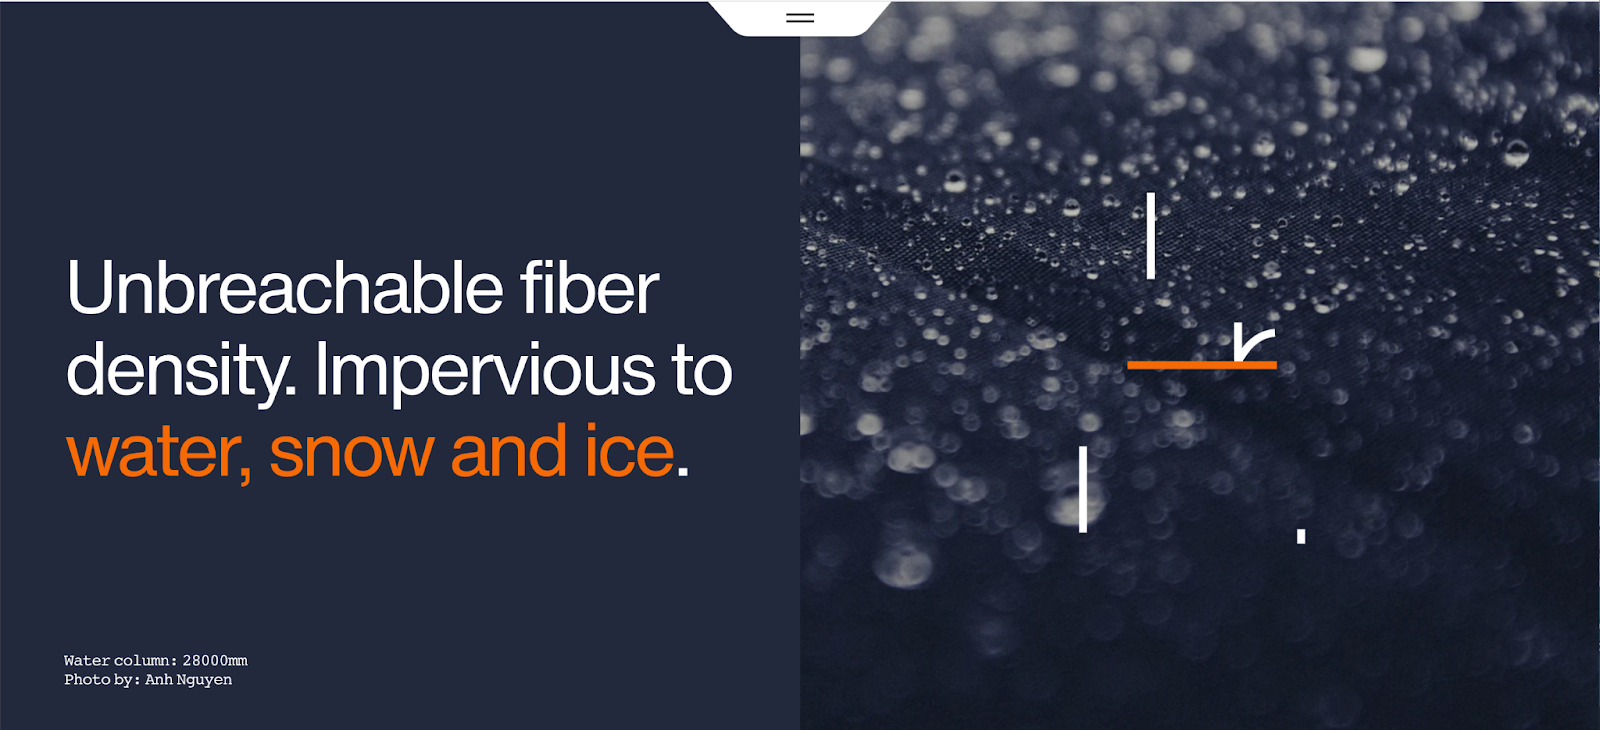 Subtle animations play on split screens that highlight product tech